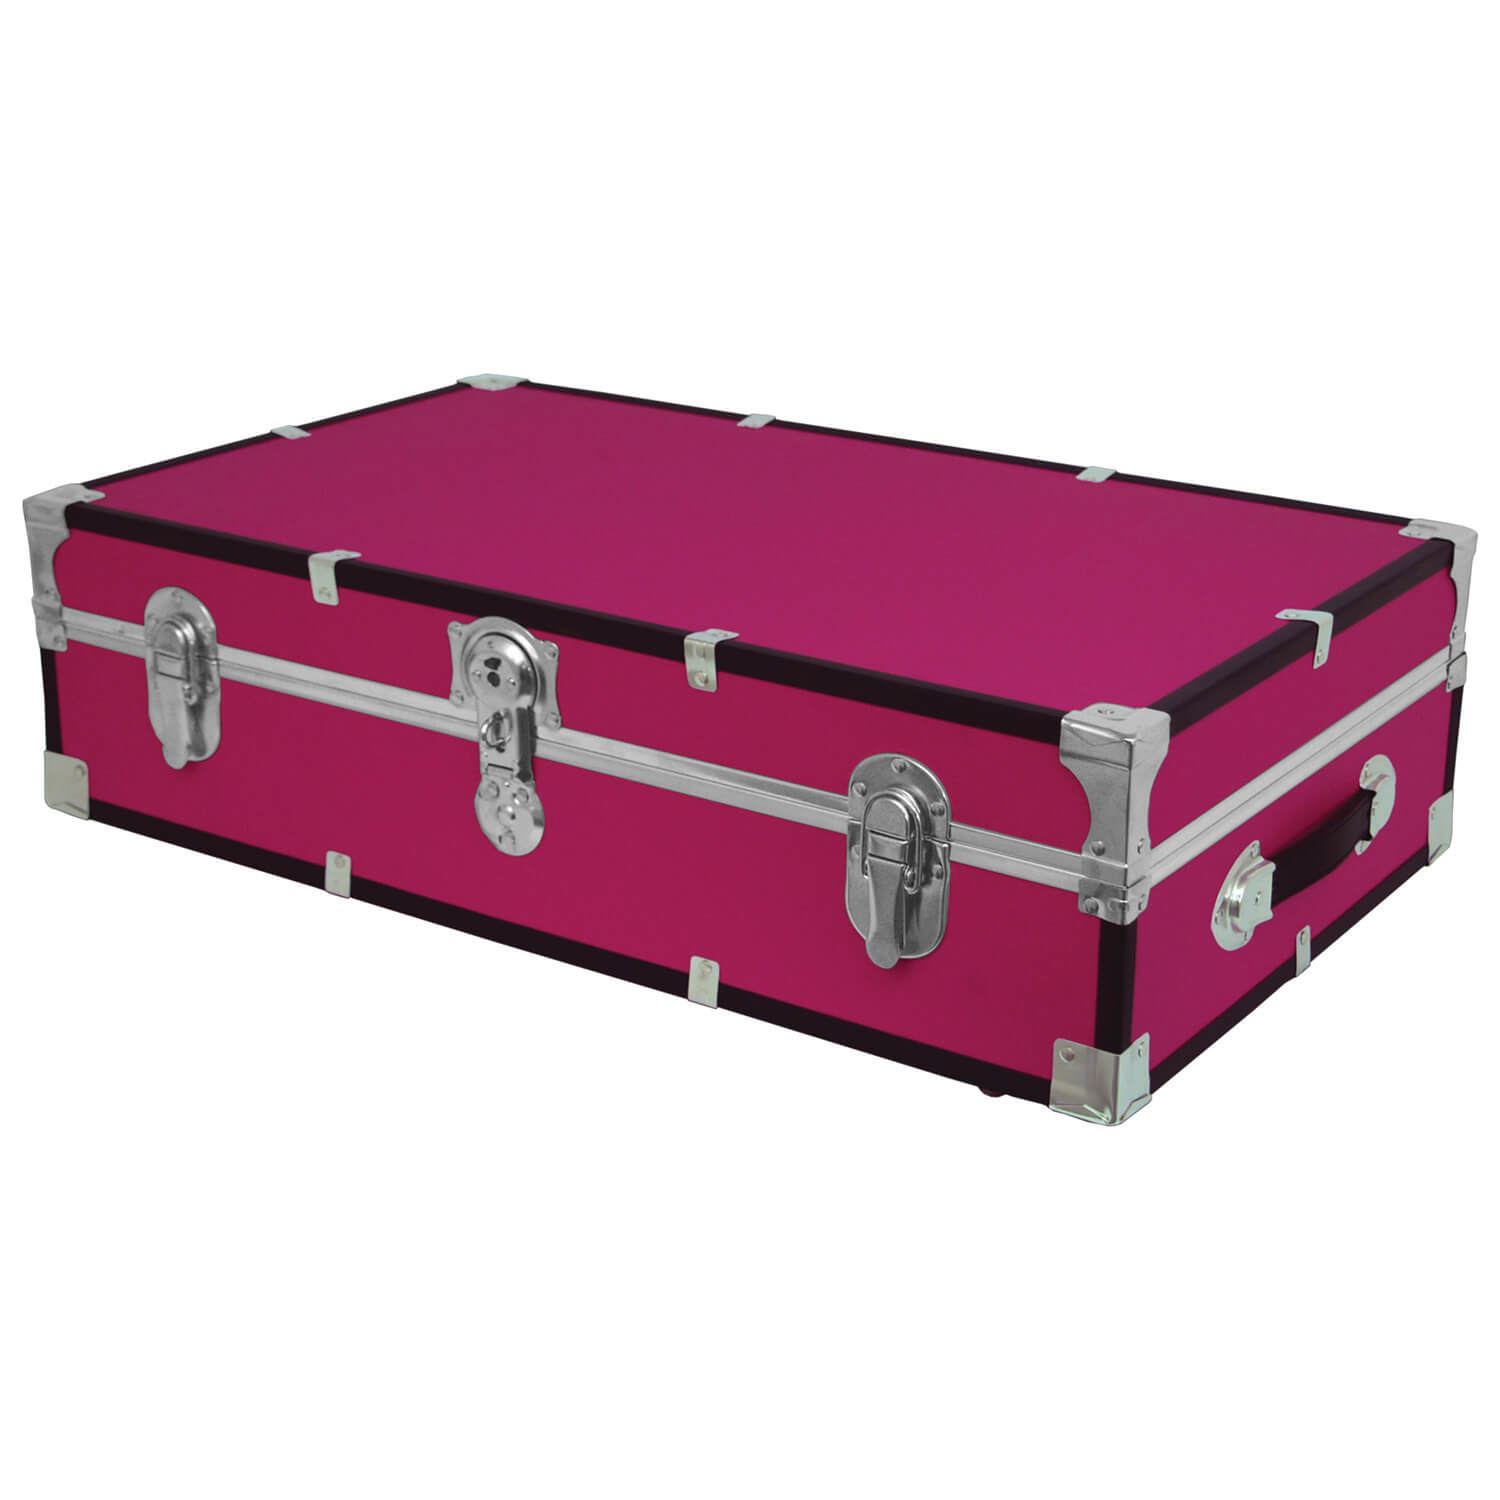 Under The Bed Trunk - Pink